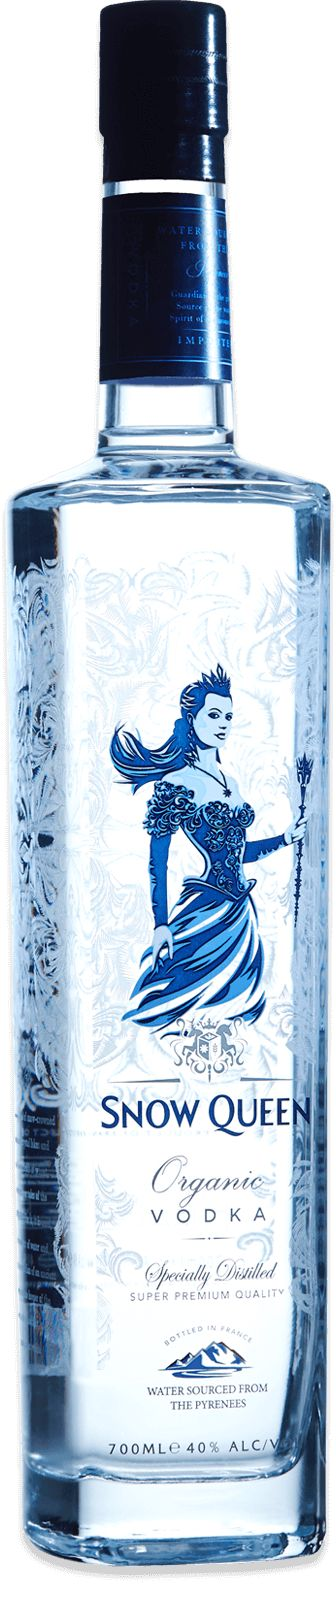 Snow Queen Vodka – Vodka Bottle